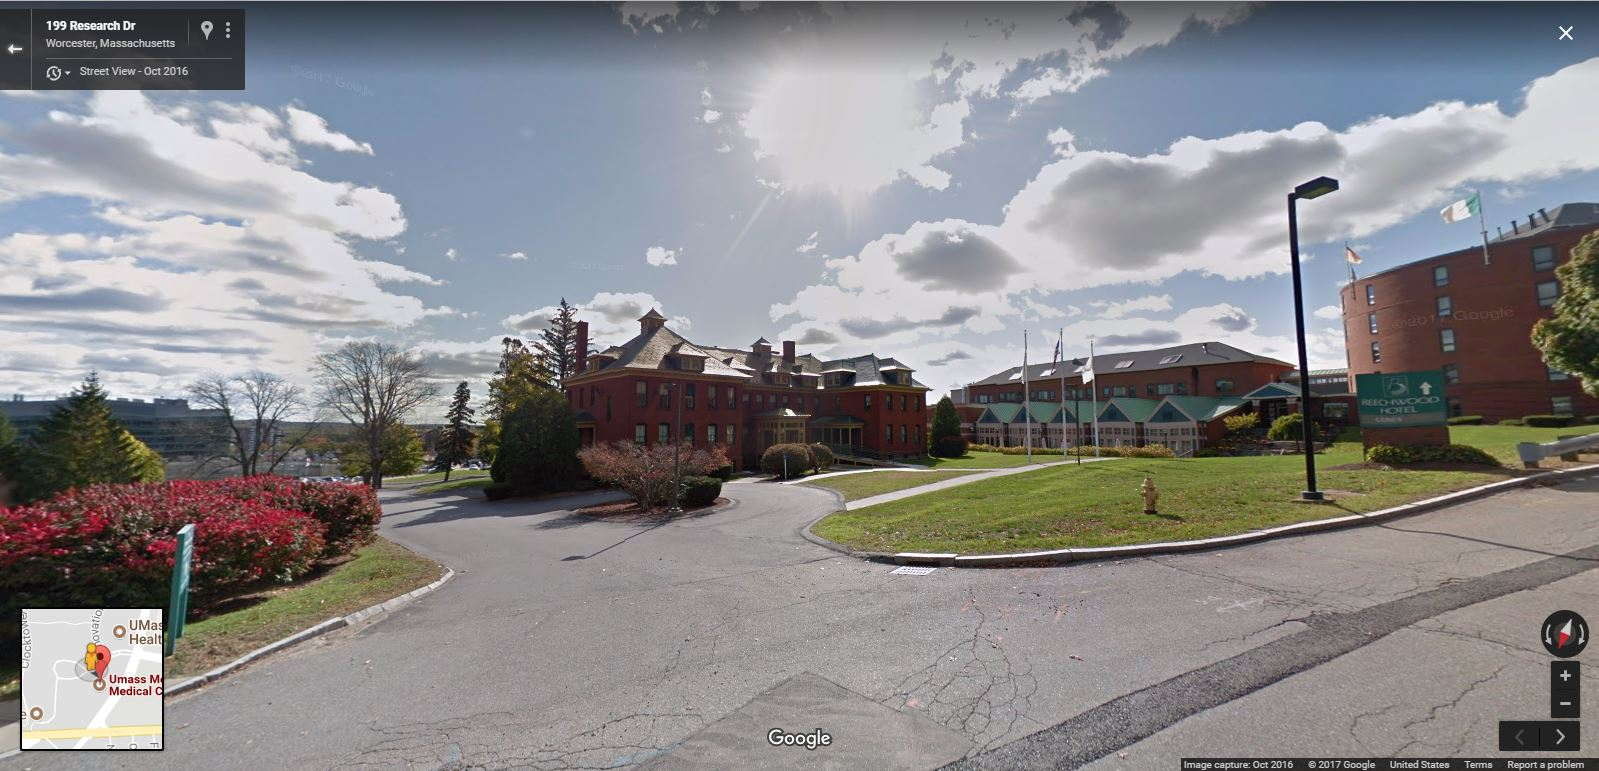 Department of Mental Health Central Massachusetts Area Office